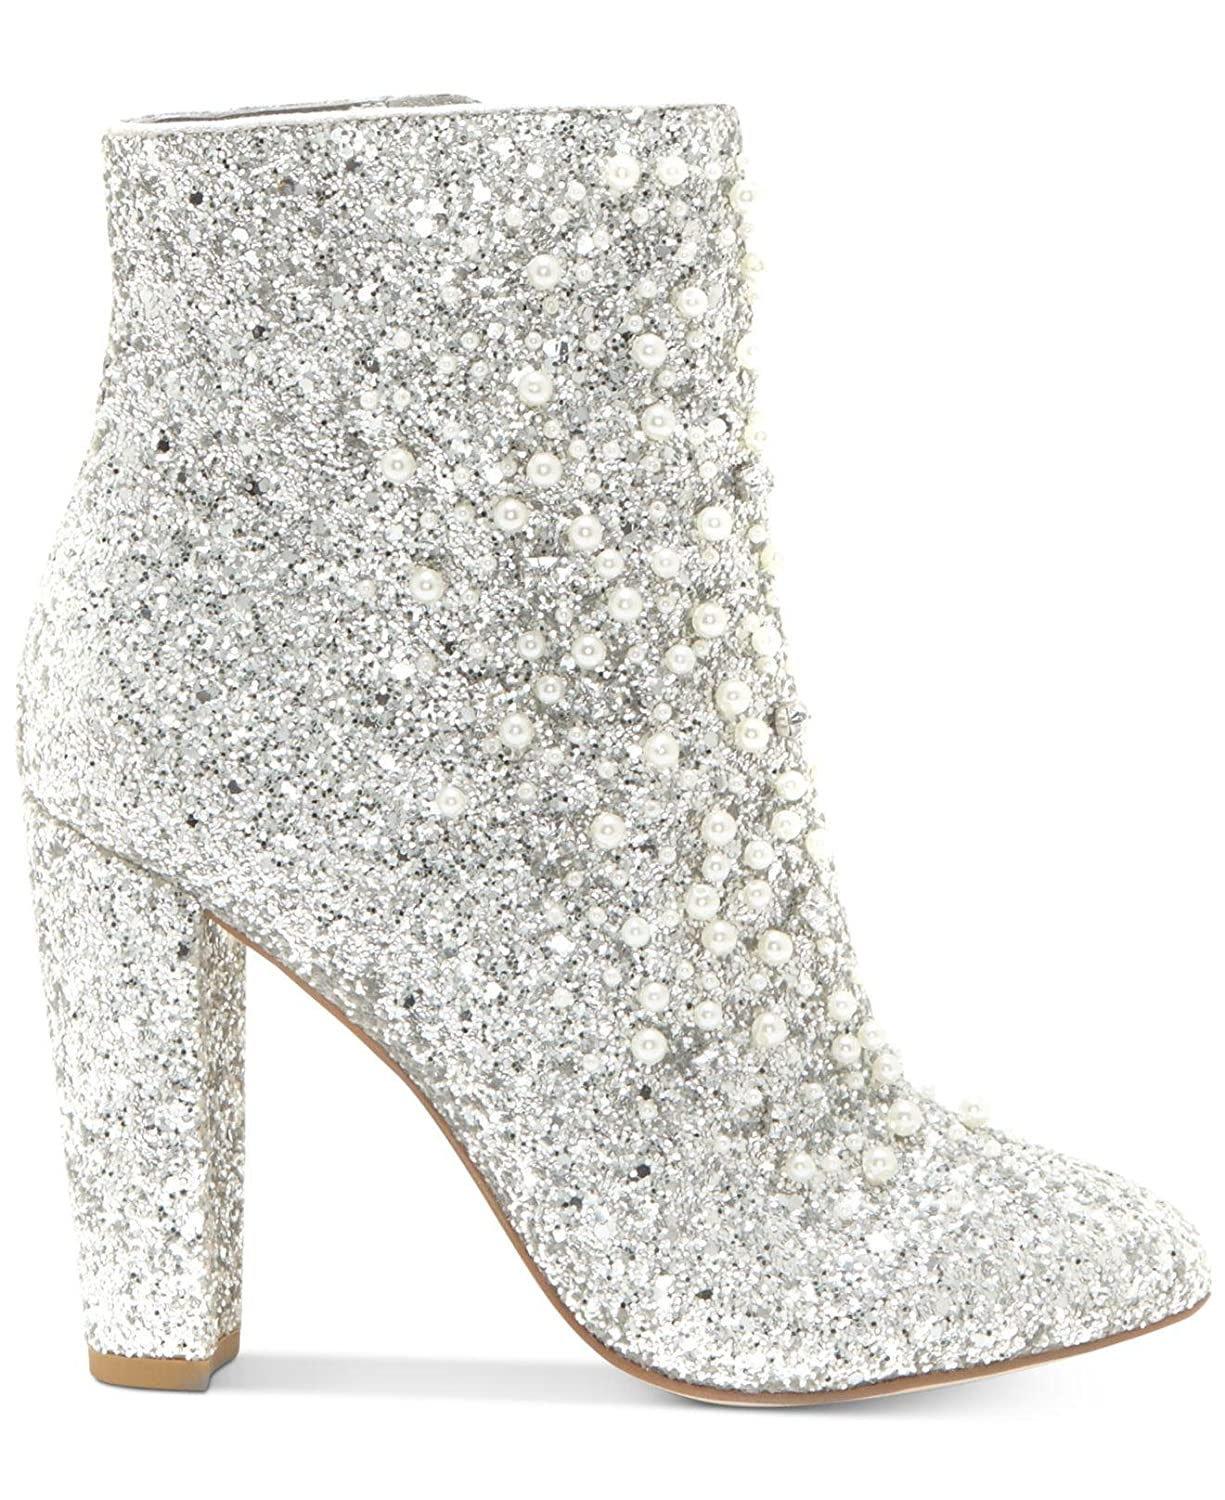 620b7e8b424 Jessica Simpson Starlite Silver Glitter Pearl Embellished Block Heel Ankle  Booties